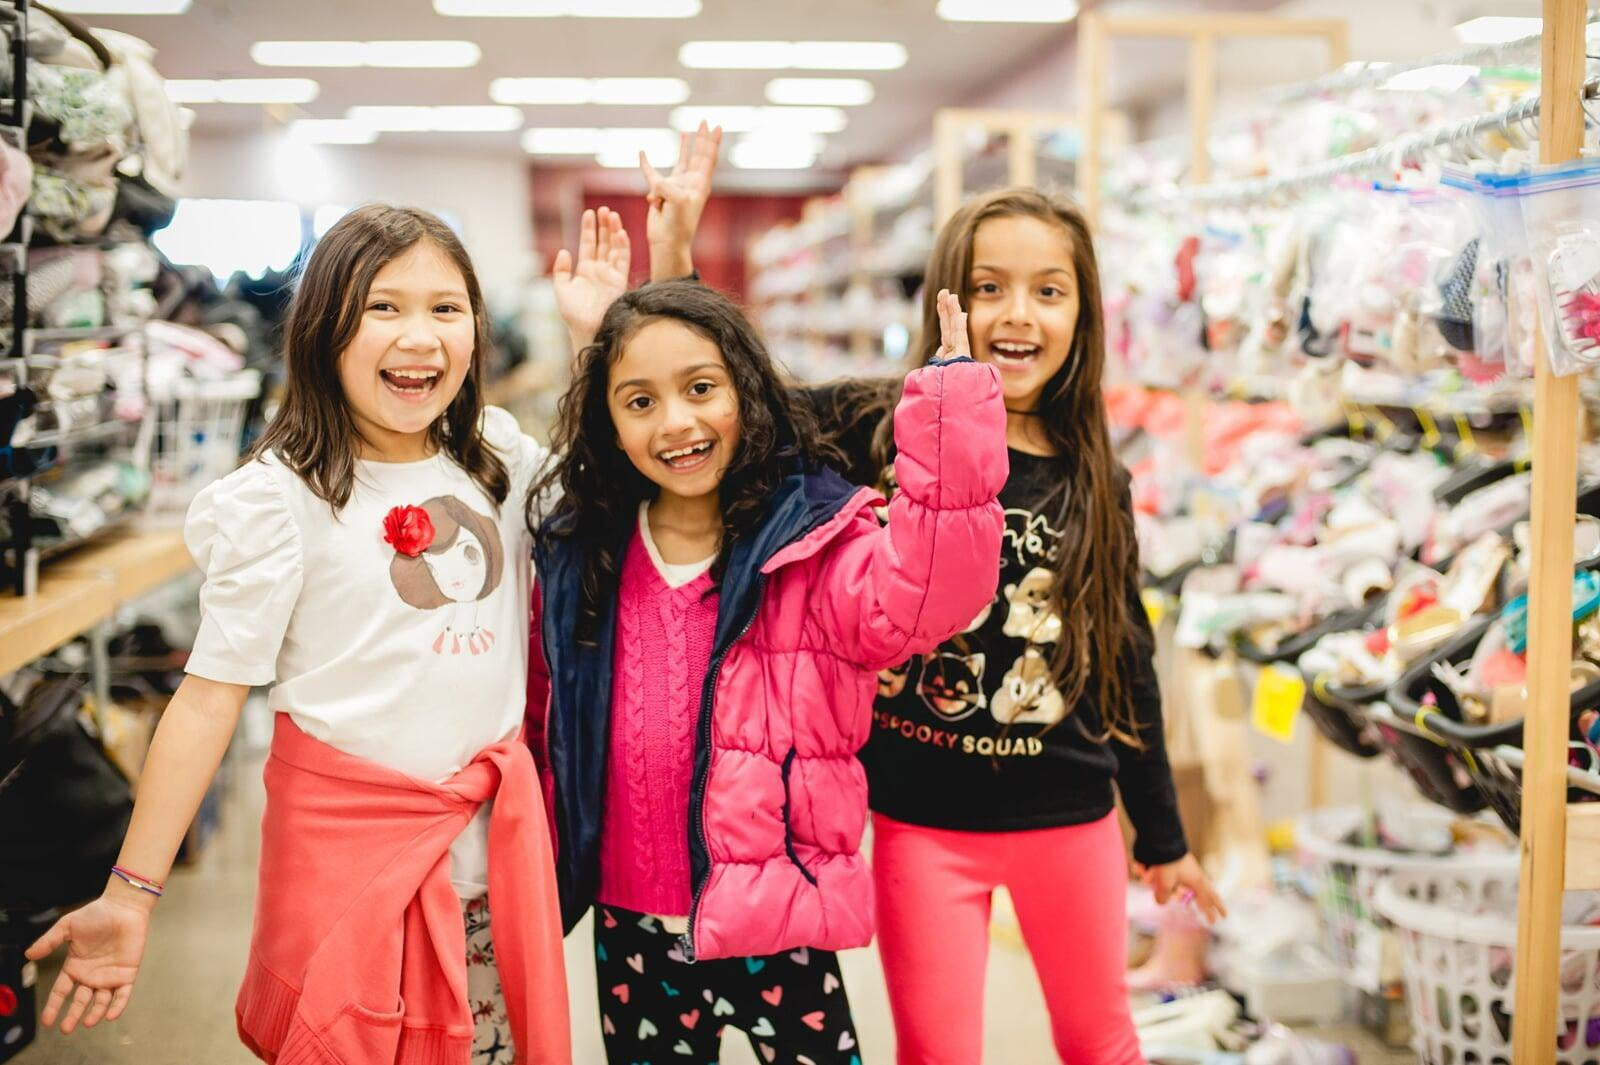 Three young girls are excited to shop together in the toy section of their local JBF sale.